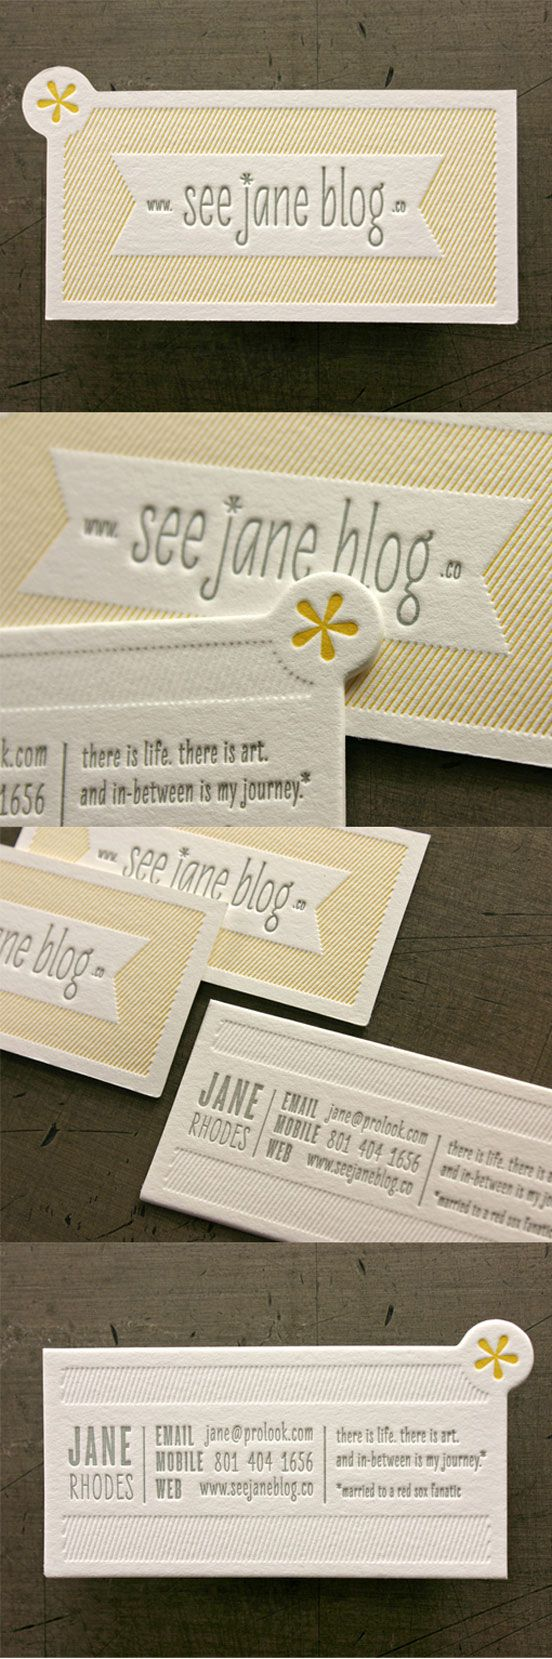 170 best business cards images on pinterest black business 170 best business cards images on pinterest black business cards and creative magicingreecefo Gallery